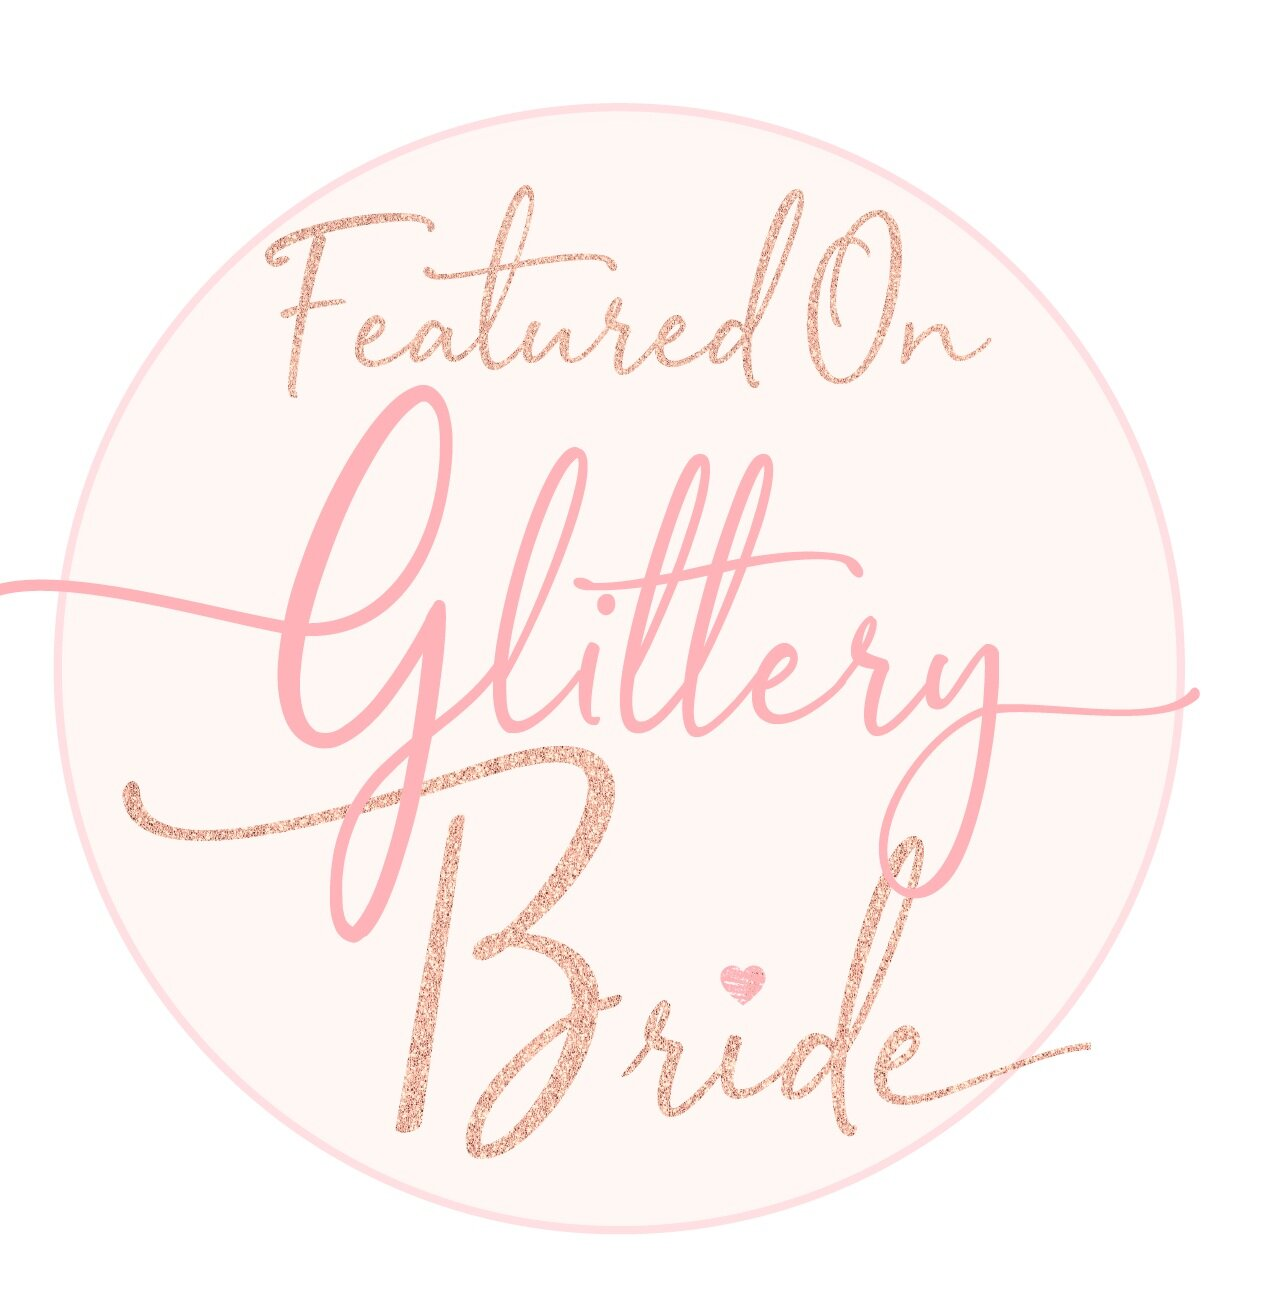 featured-on-glittery-bride-badge.jpg